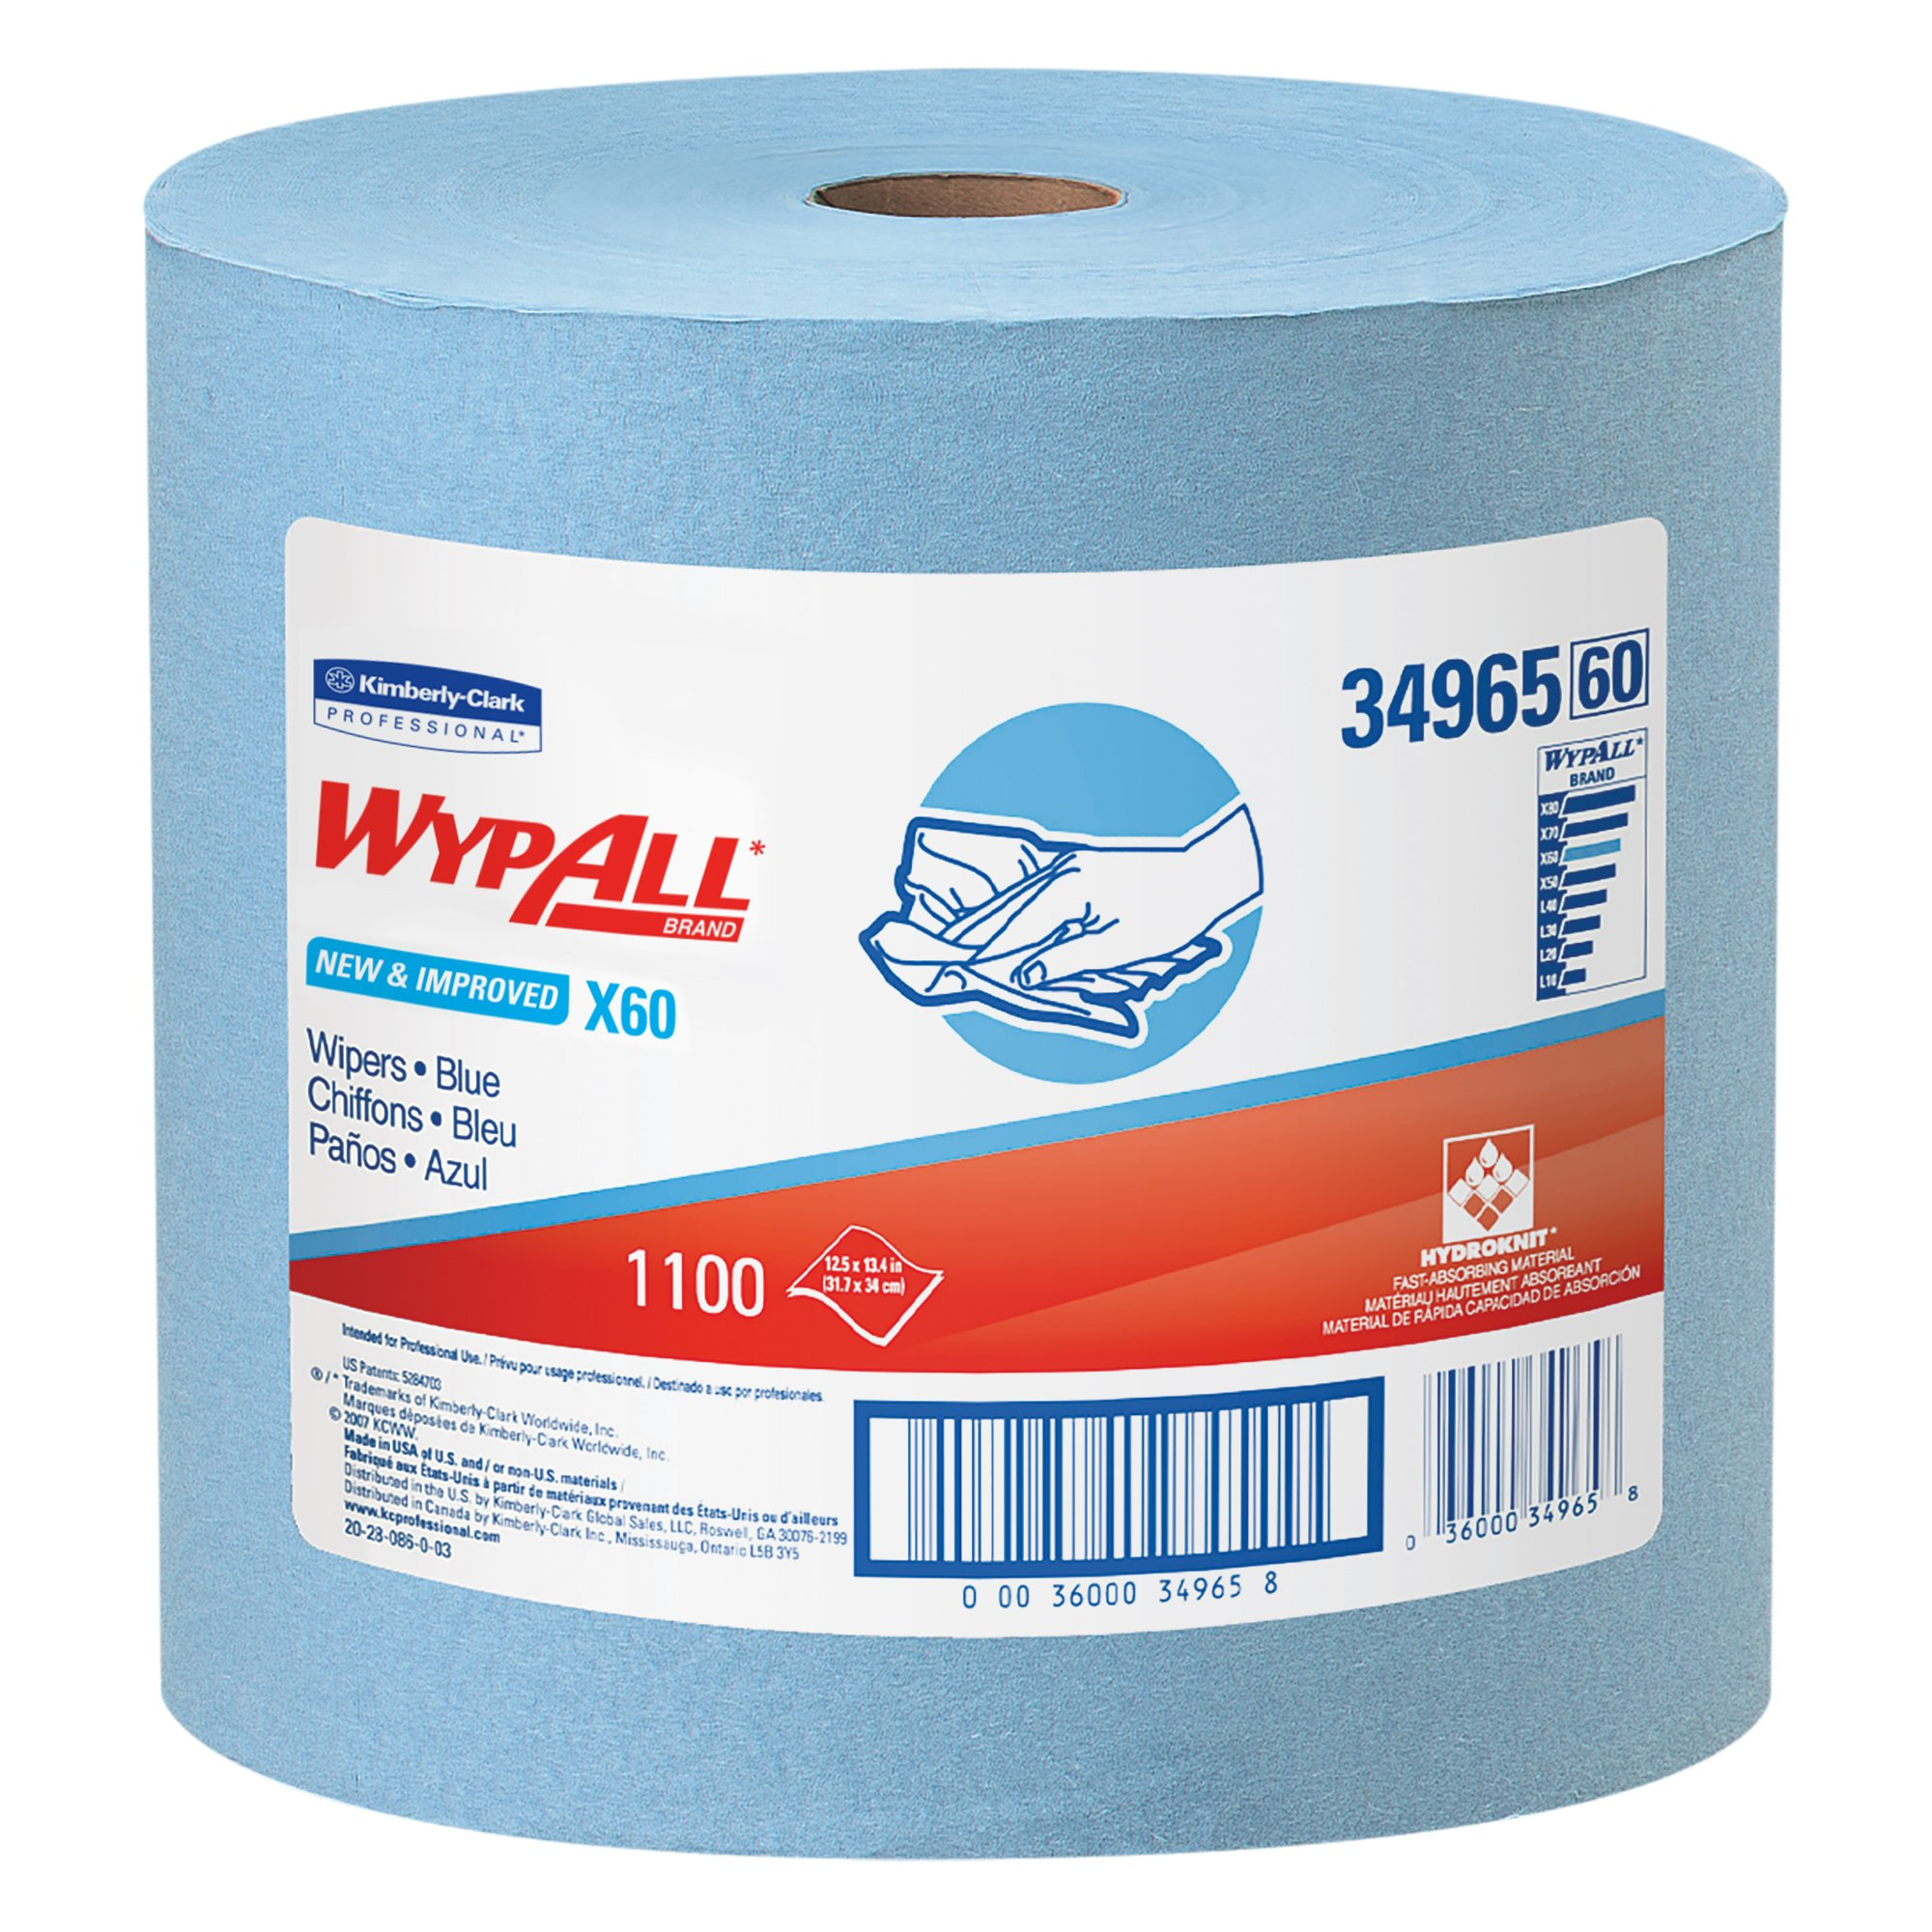 Wypall X60 Reusable Cloths (34965), Blue, Jumbo Roll, 1100 Sheets/Roll, 1 Roll/Case